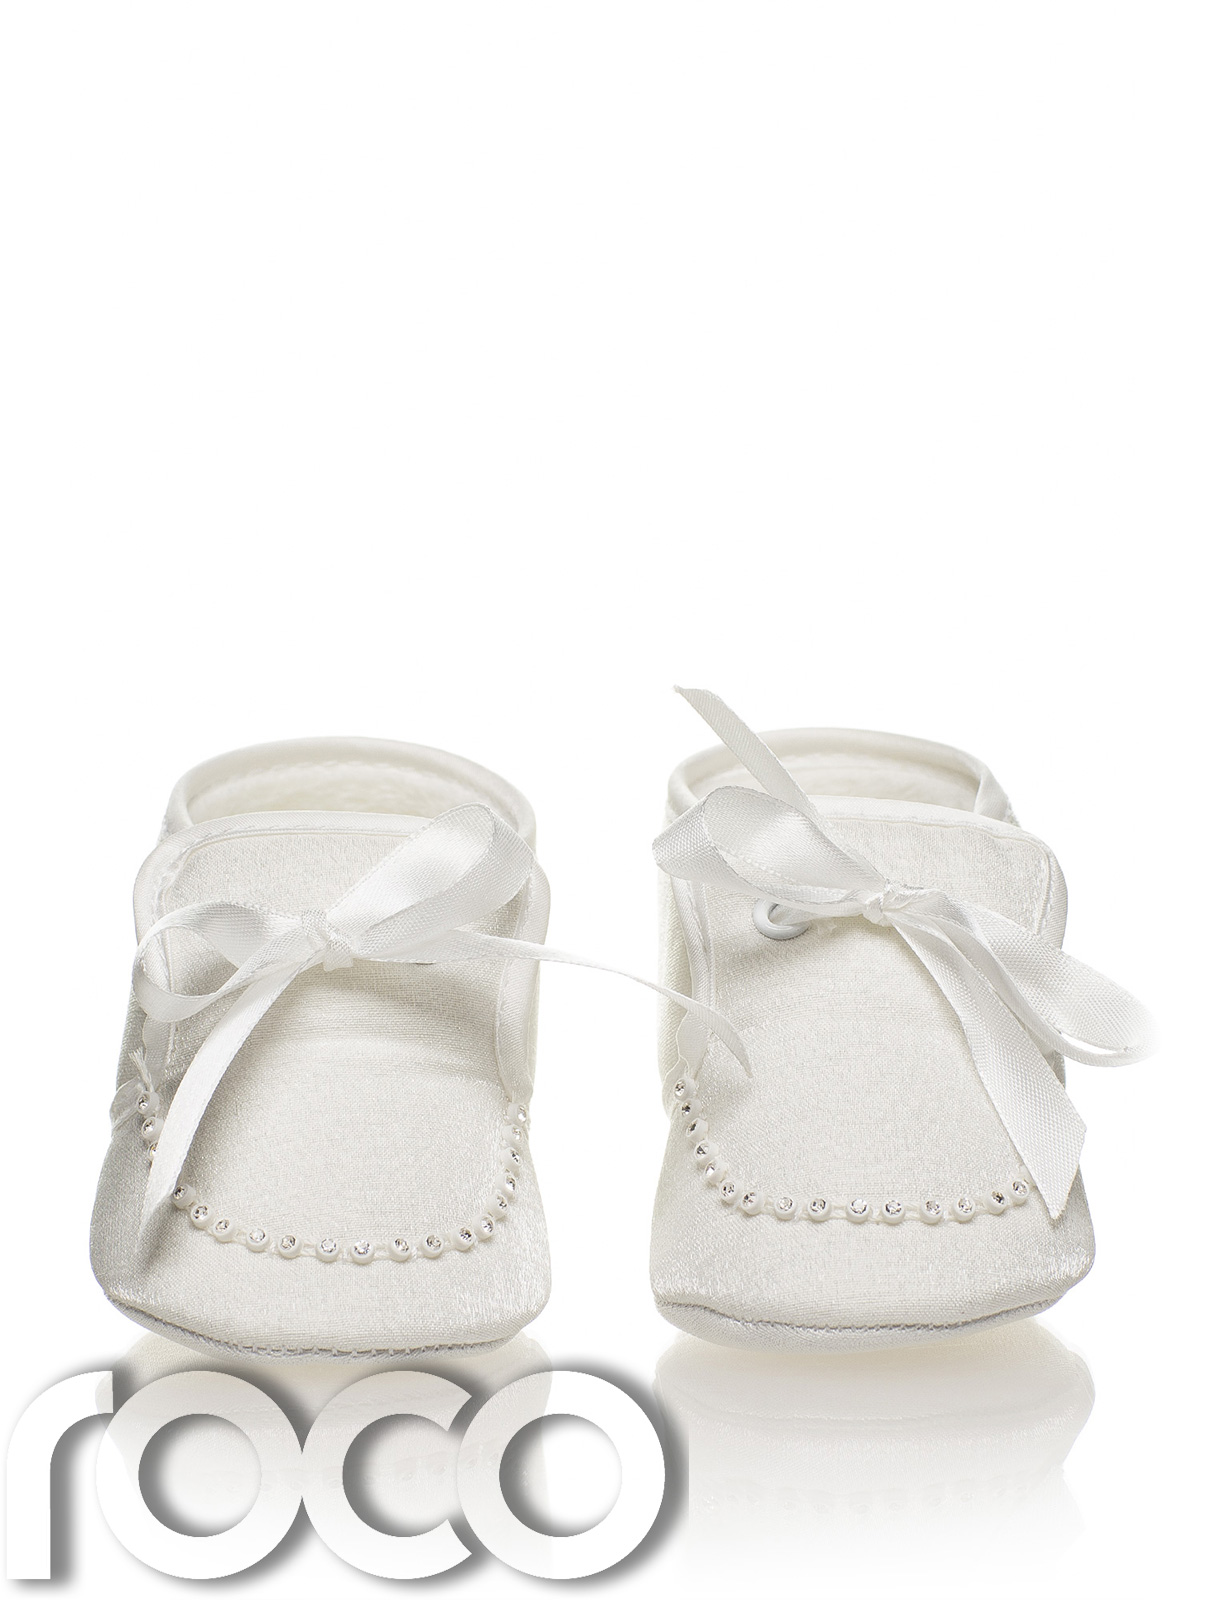 Baby Boys Shoes, Christening Shoes, Boys Ivory Shoes, Boys